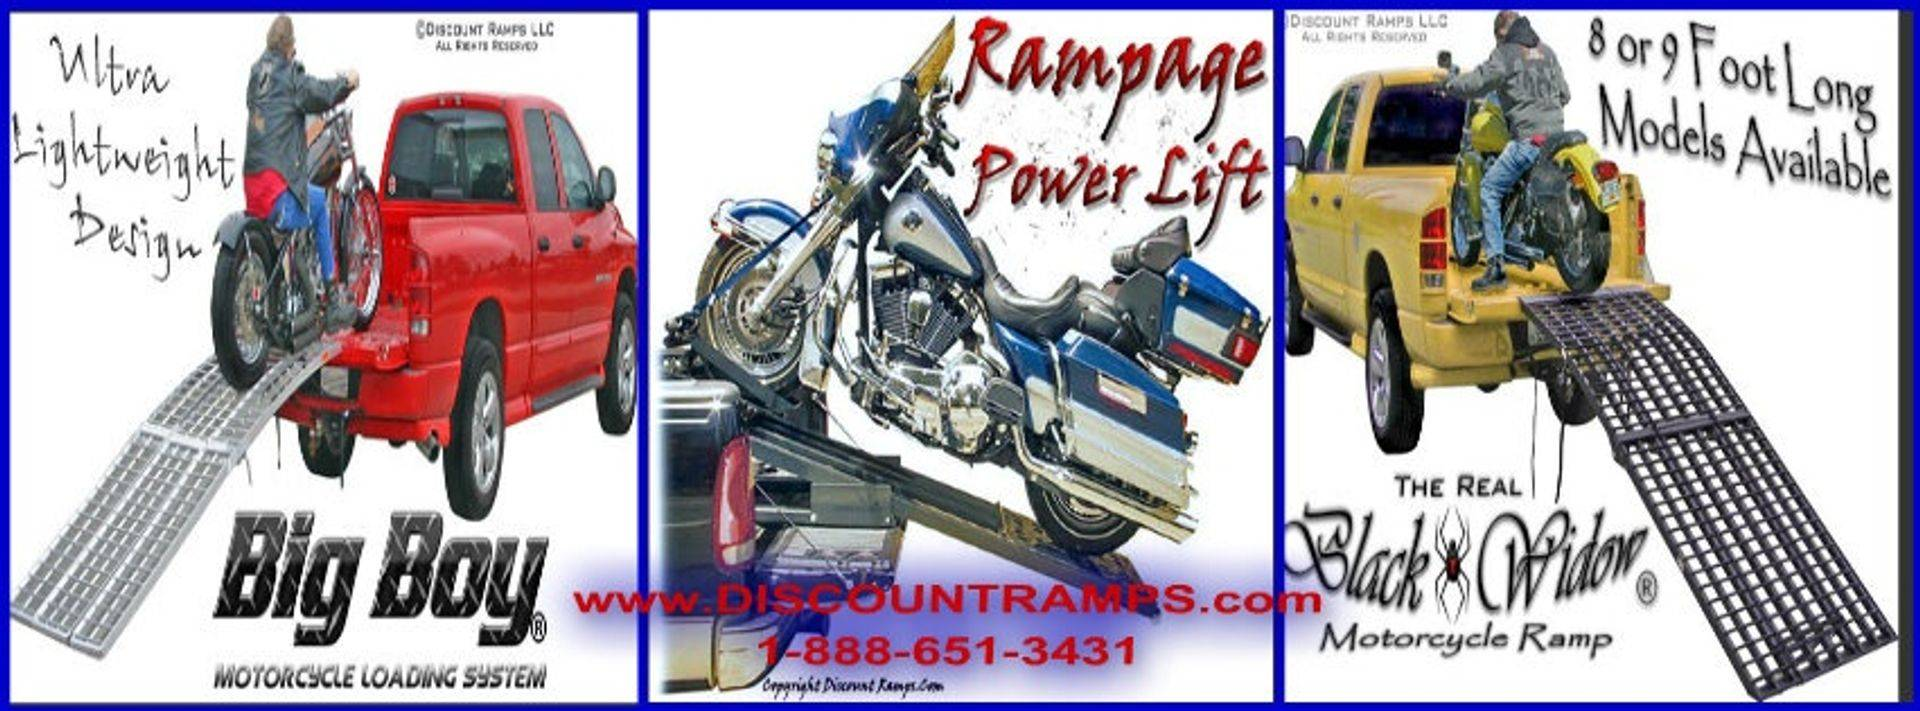 www.ride2guide.com Motorcycle Dealerships Directory